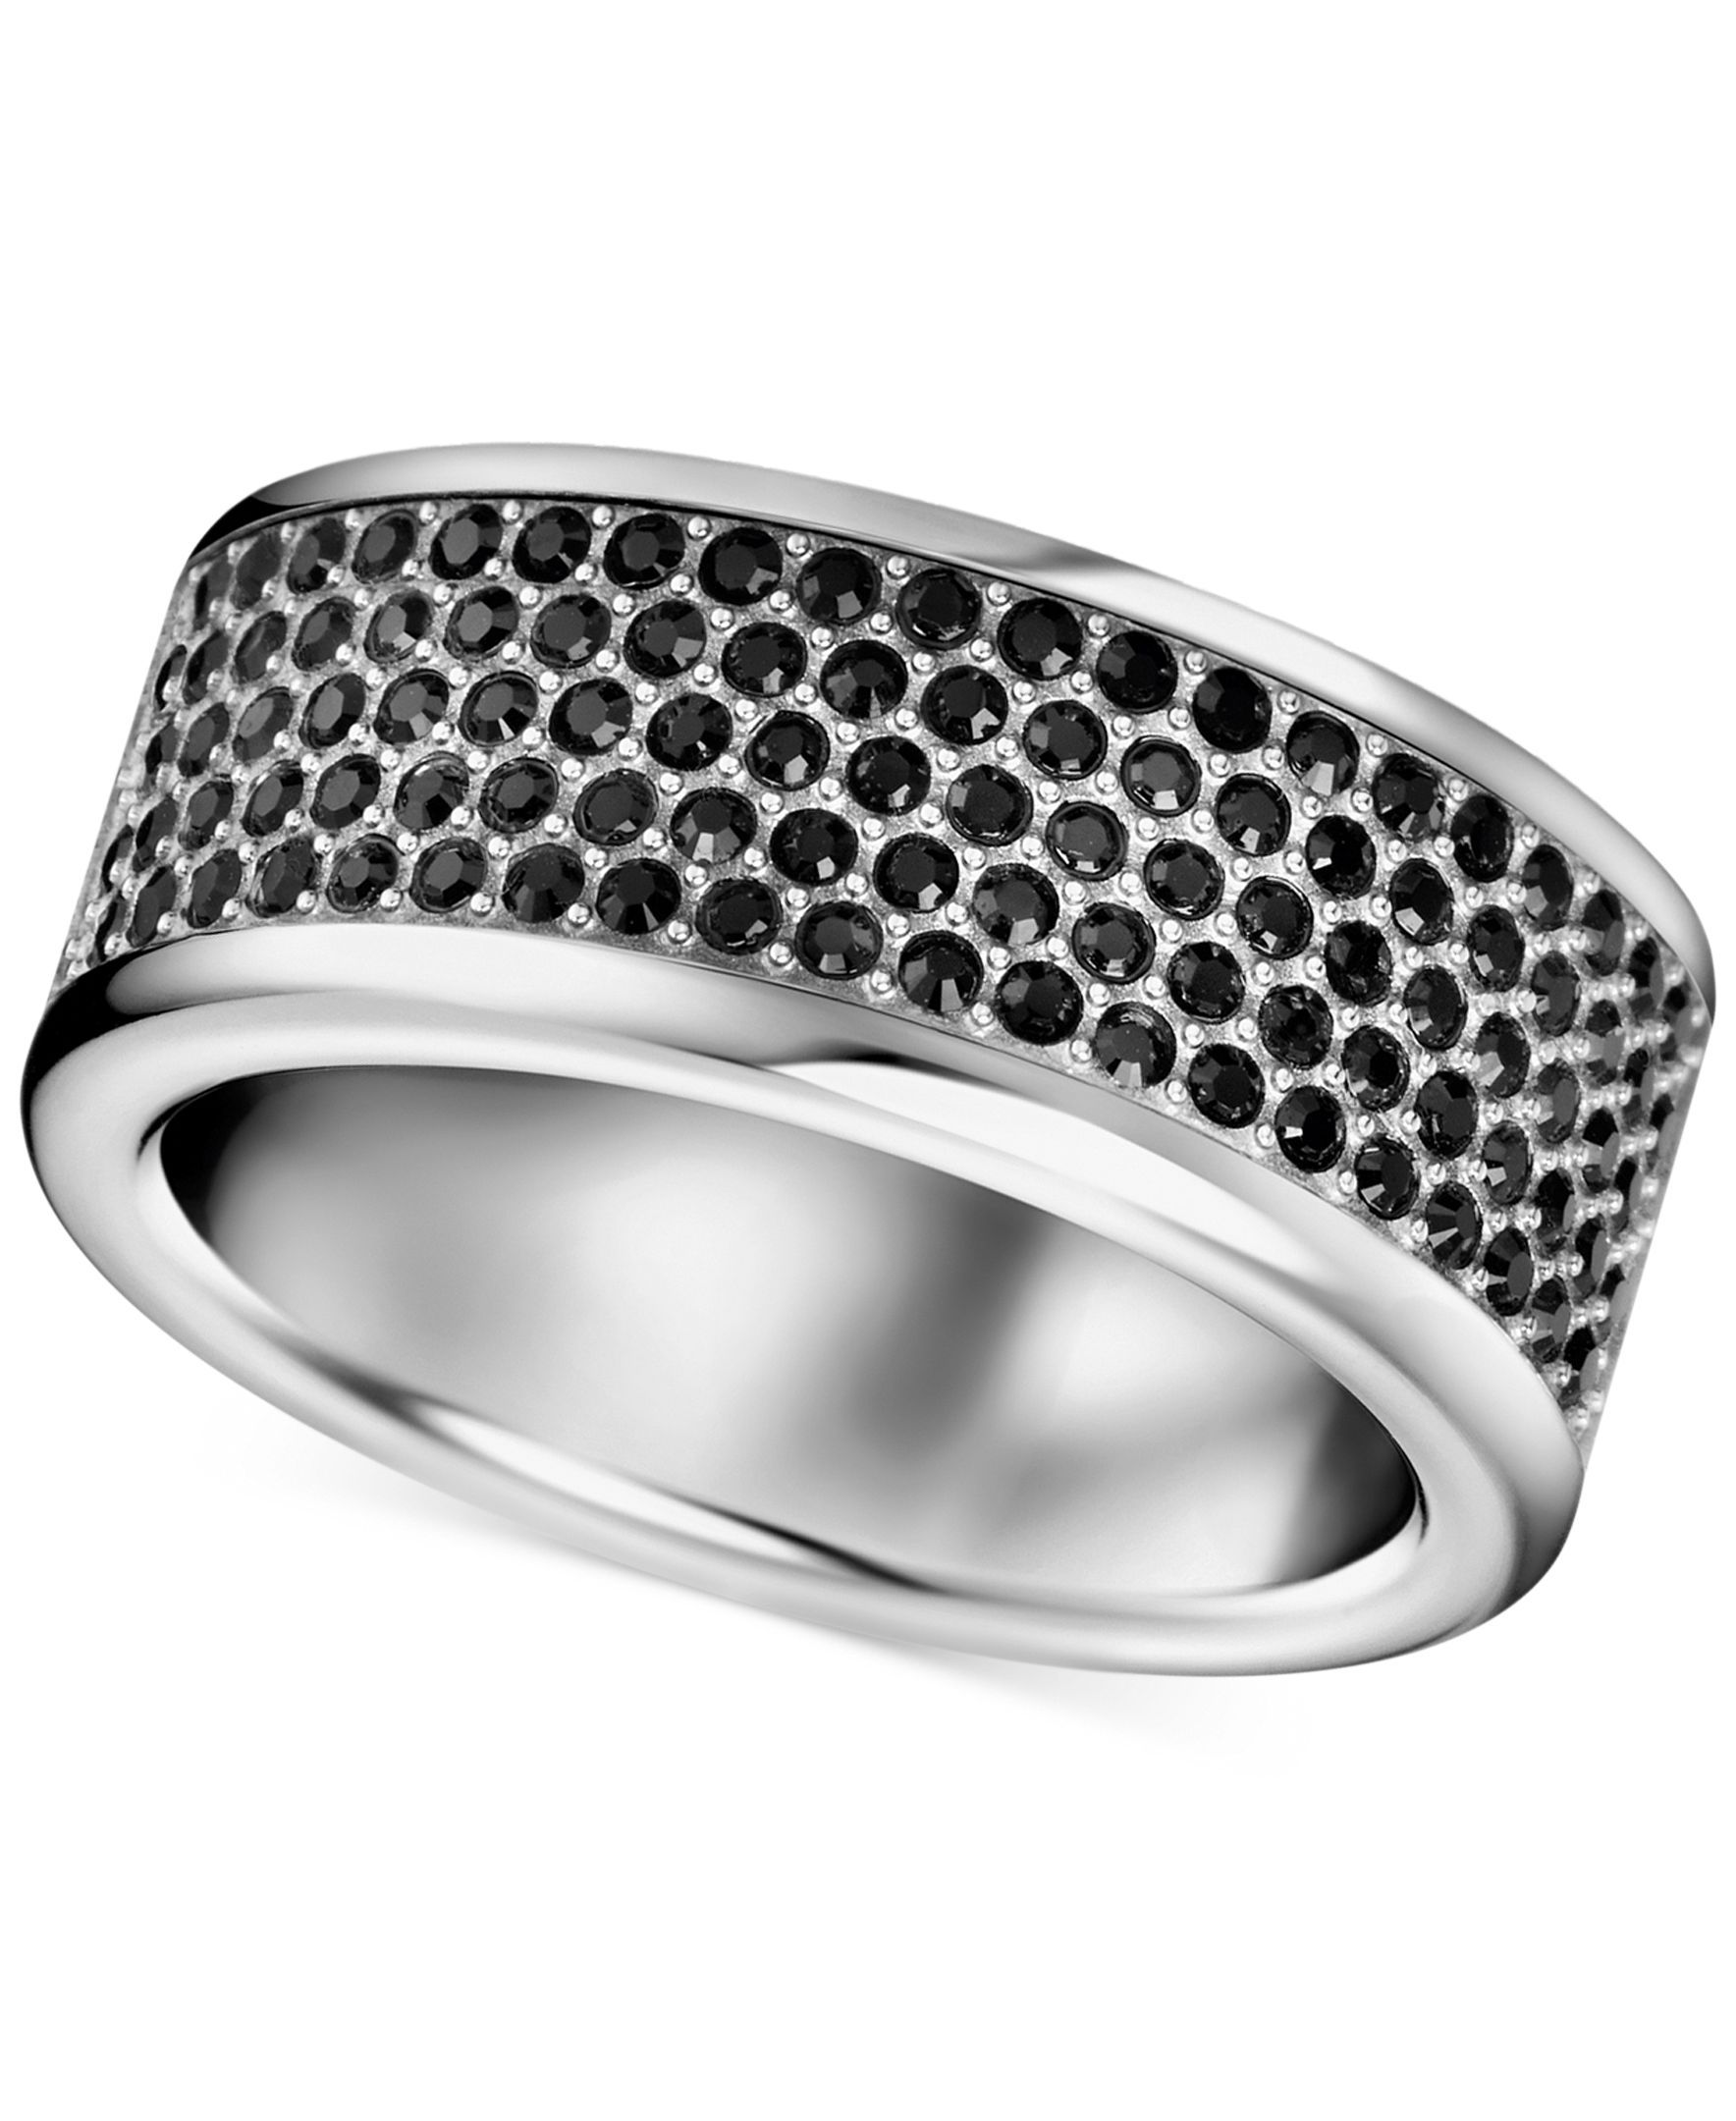 a9514a5db0c56e Calvin Klein Stainless Steel Black Swarovski Crystal Ring ...